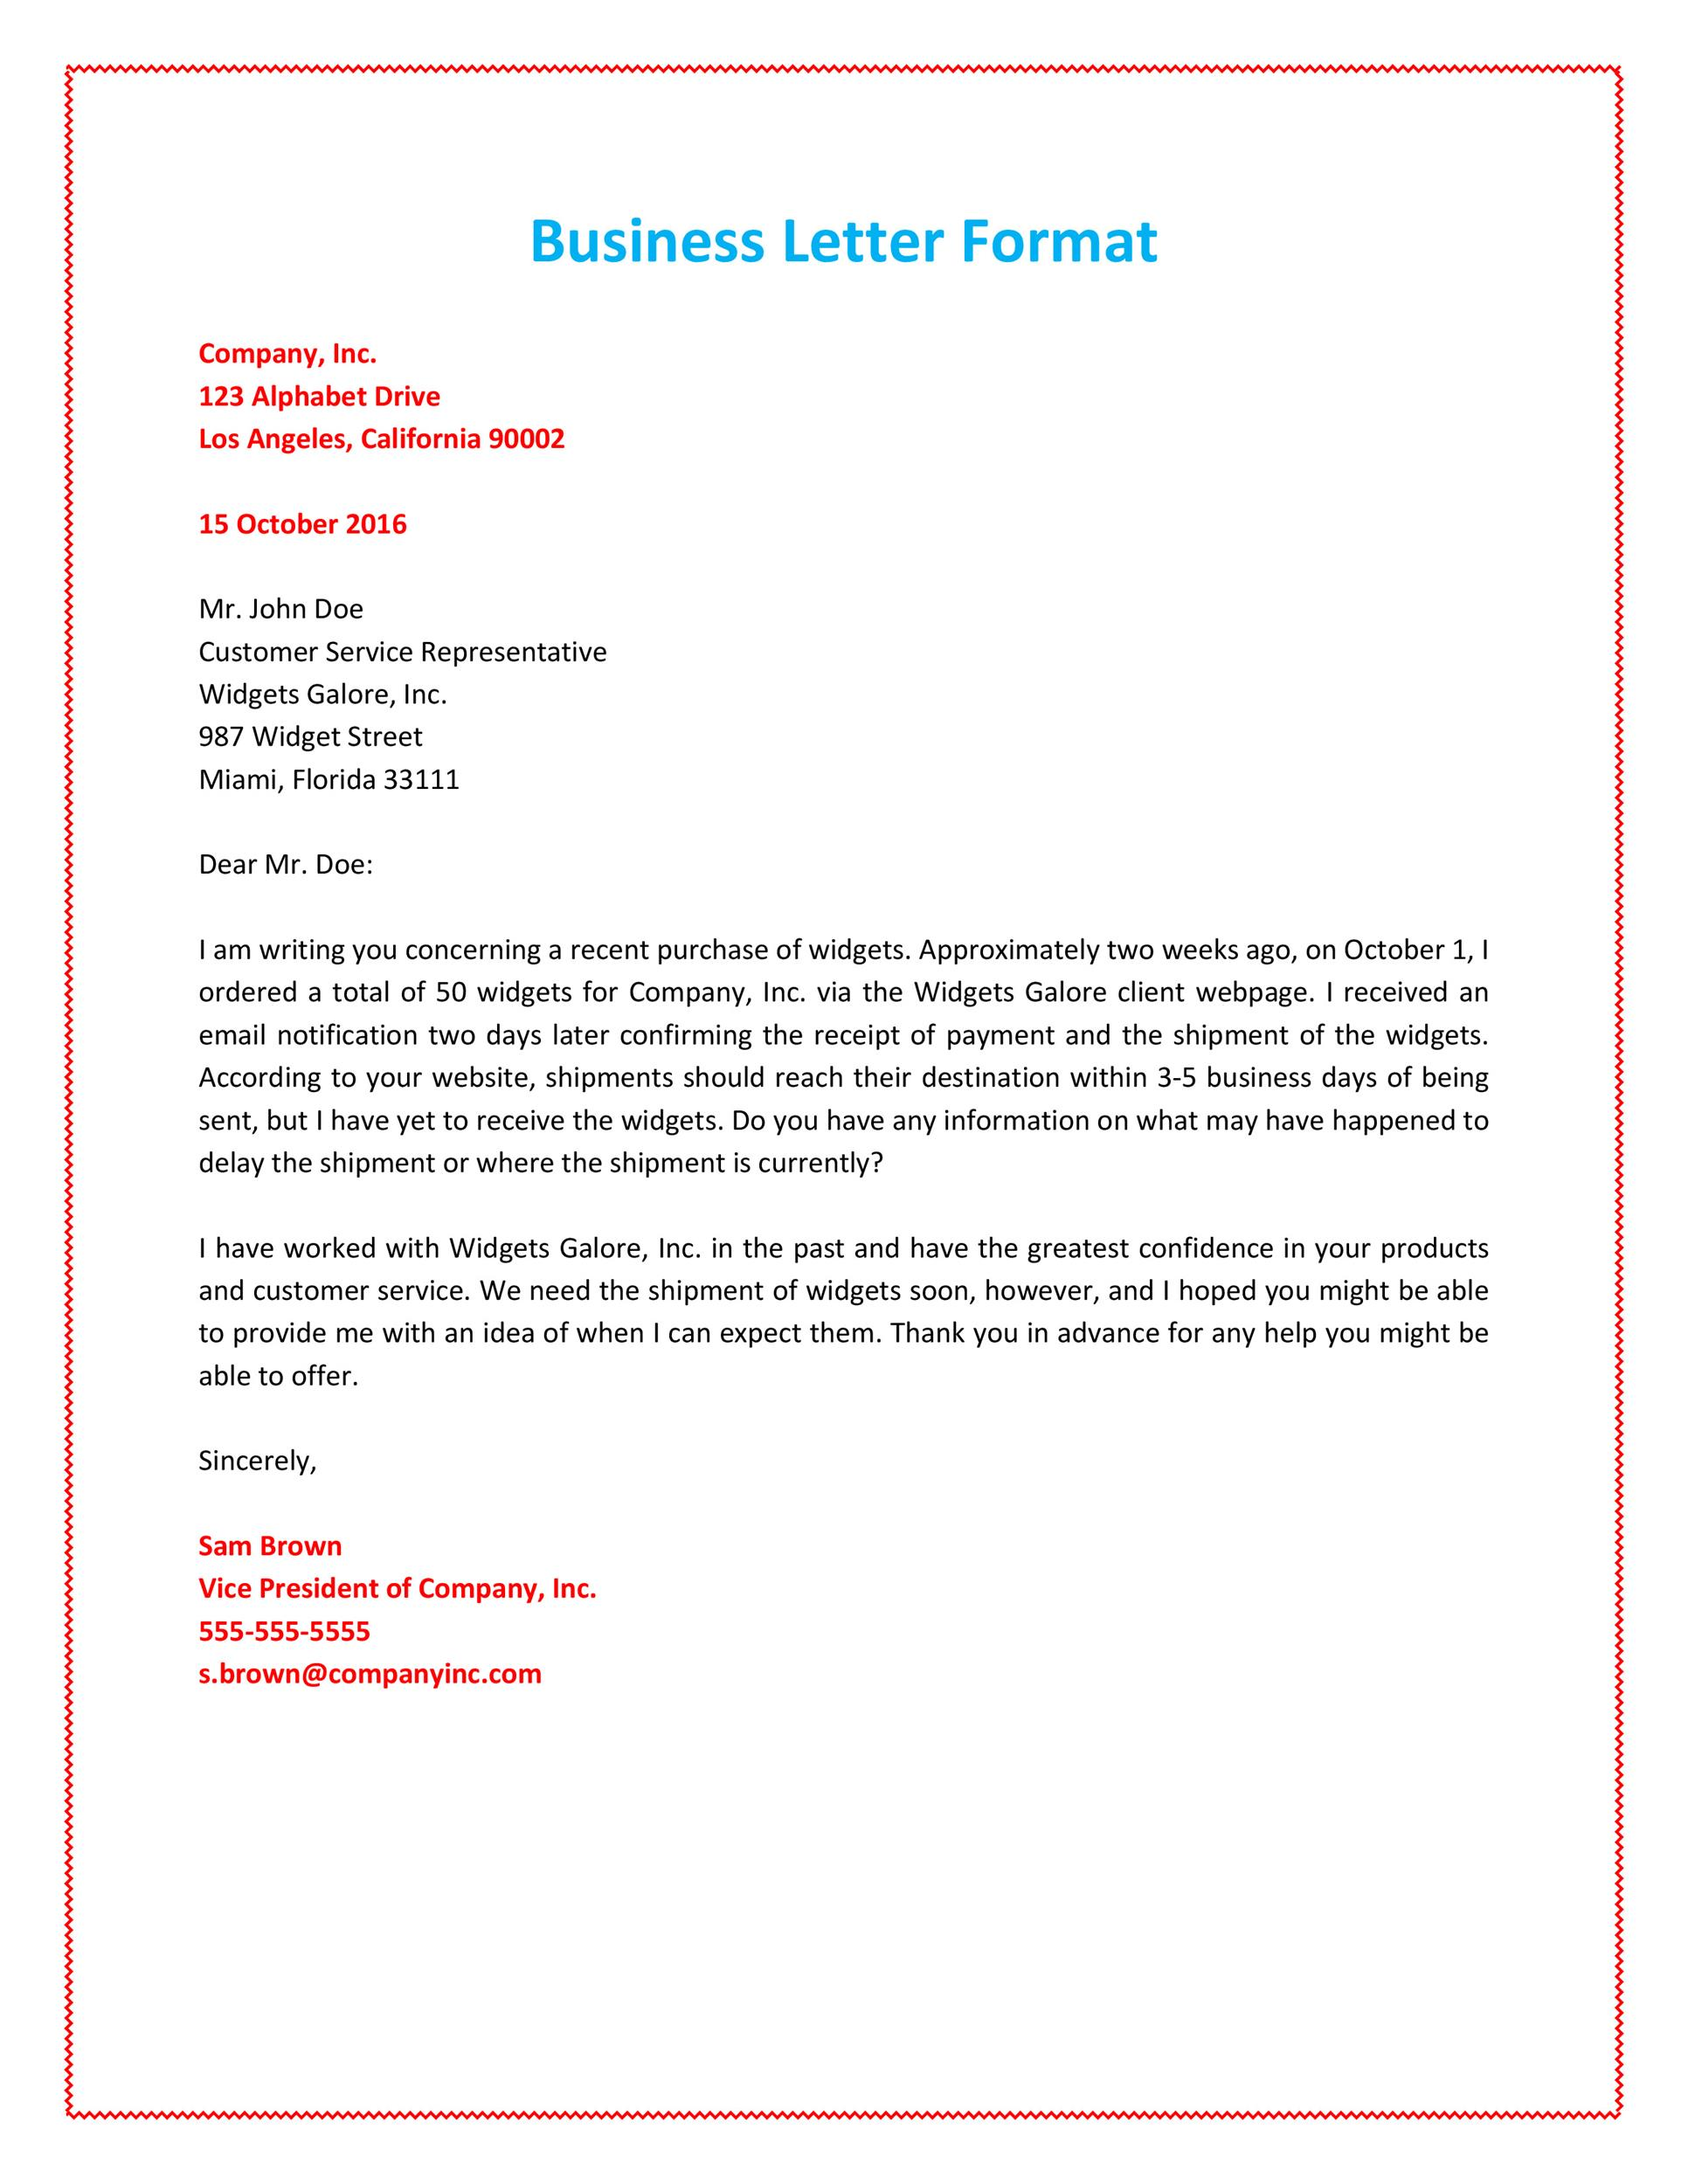 35 formal business letter format templates examples template lab business letter format example flashek Gallery